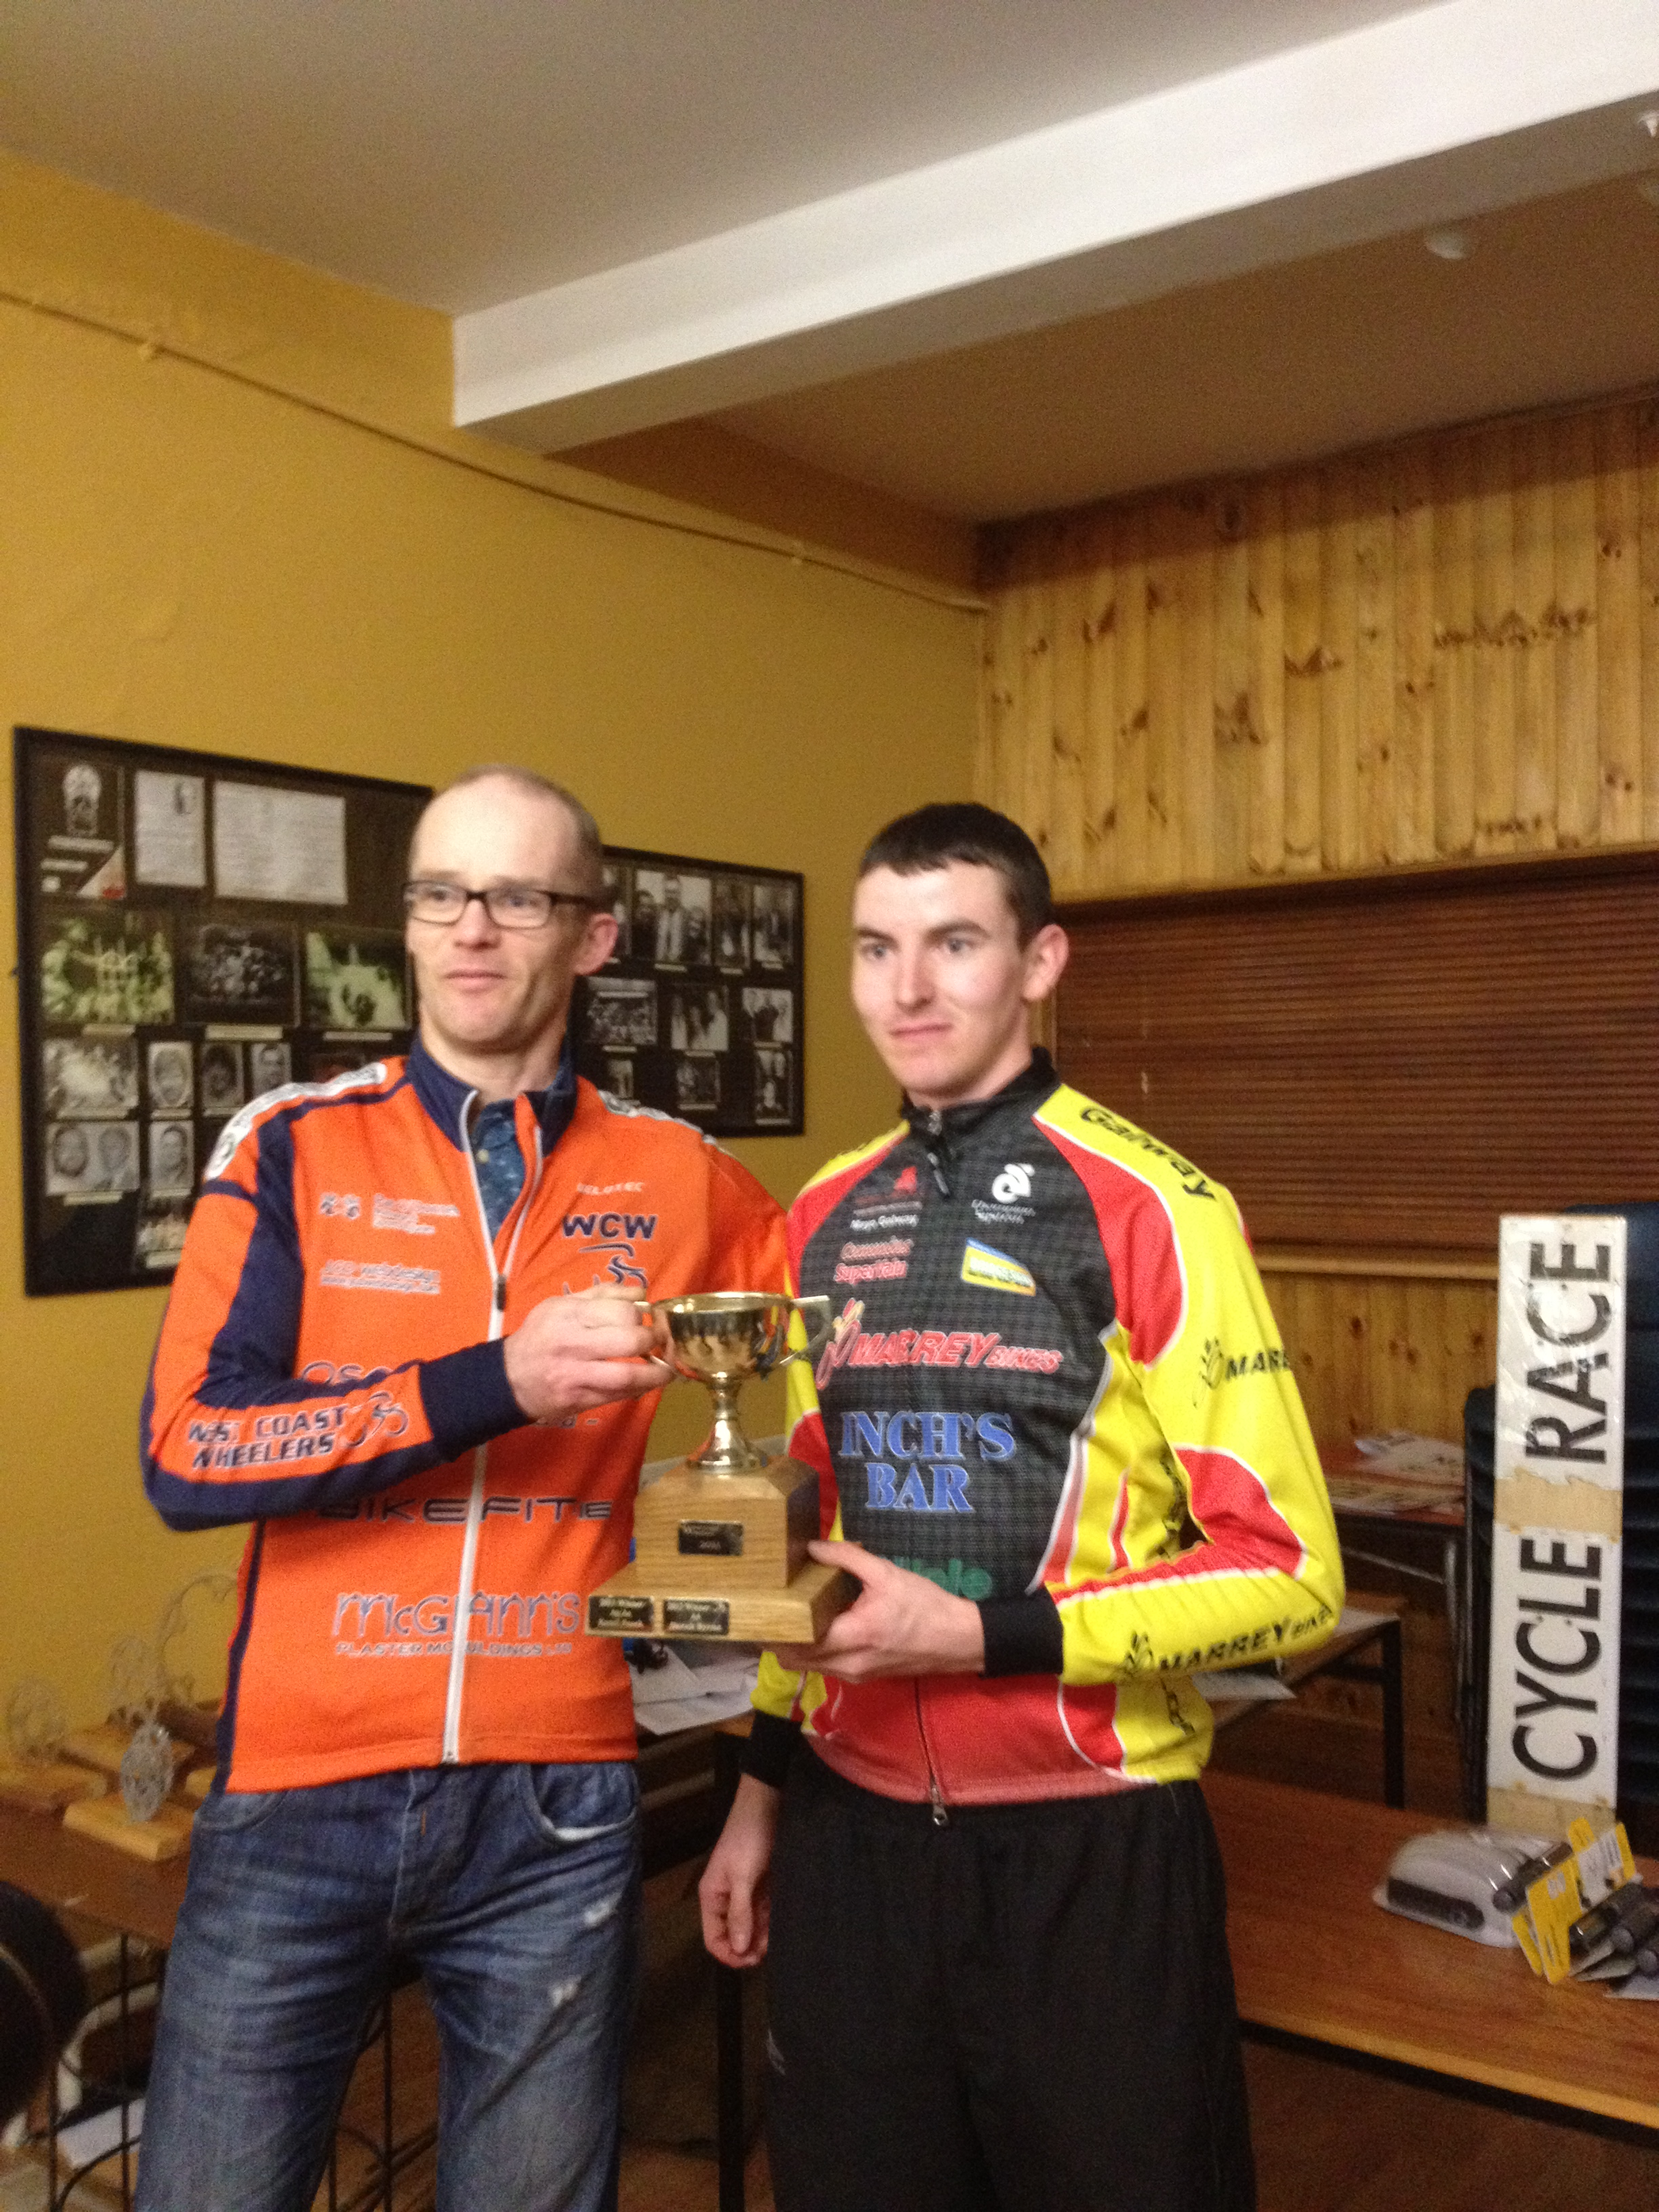 Sean O Malley winner of GP loughrea